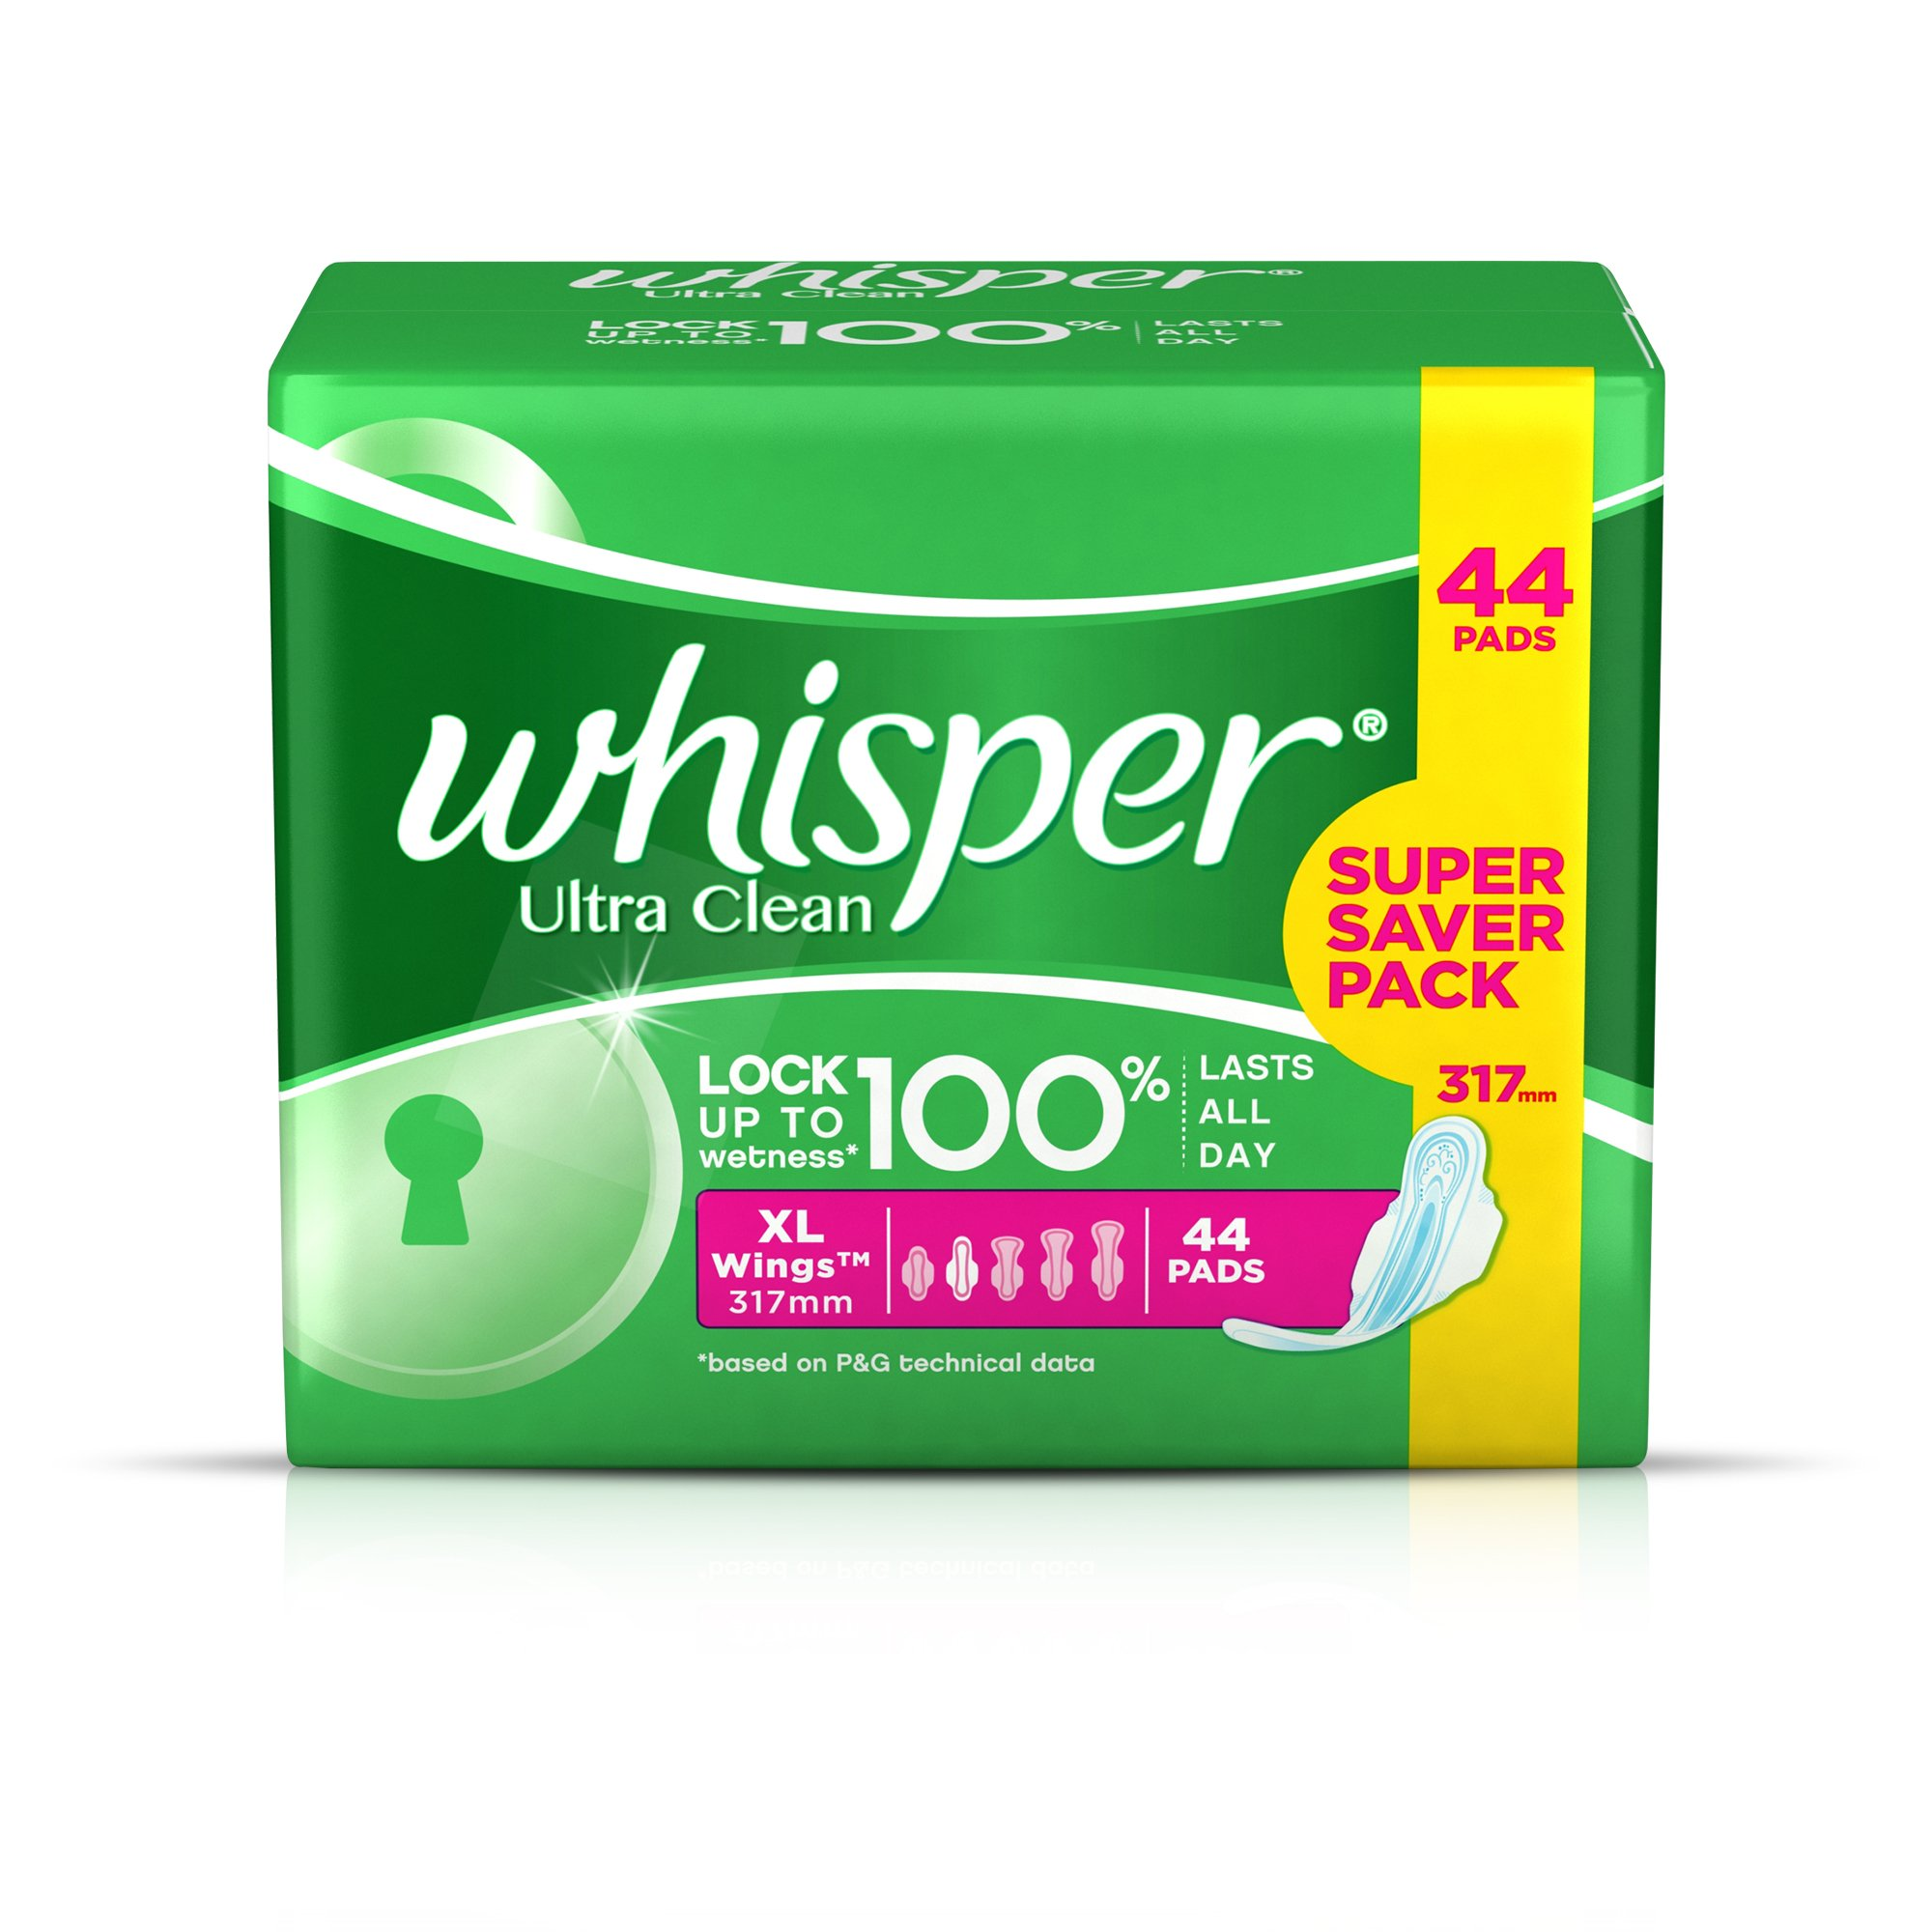 Whisper Ultra Sanitary Pads - 44 Count (Extra Large) product image